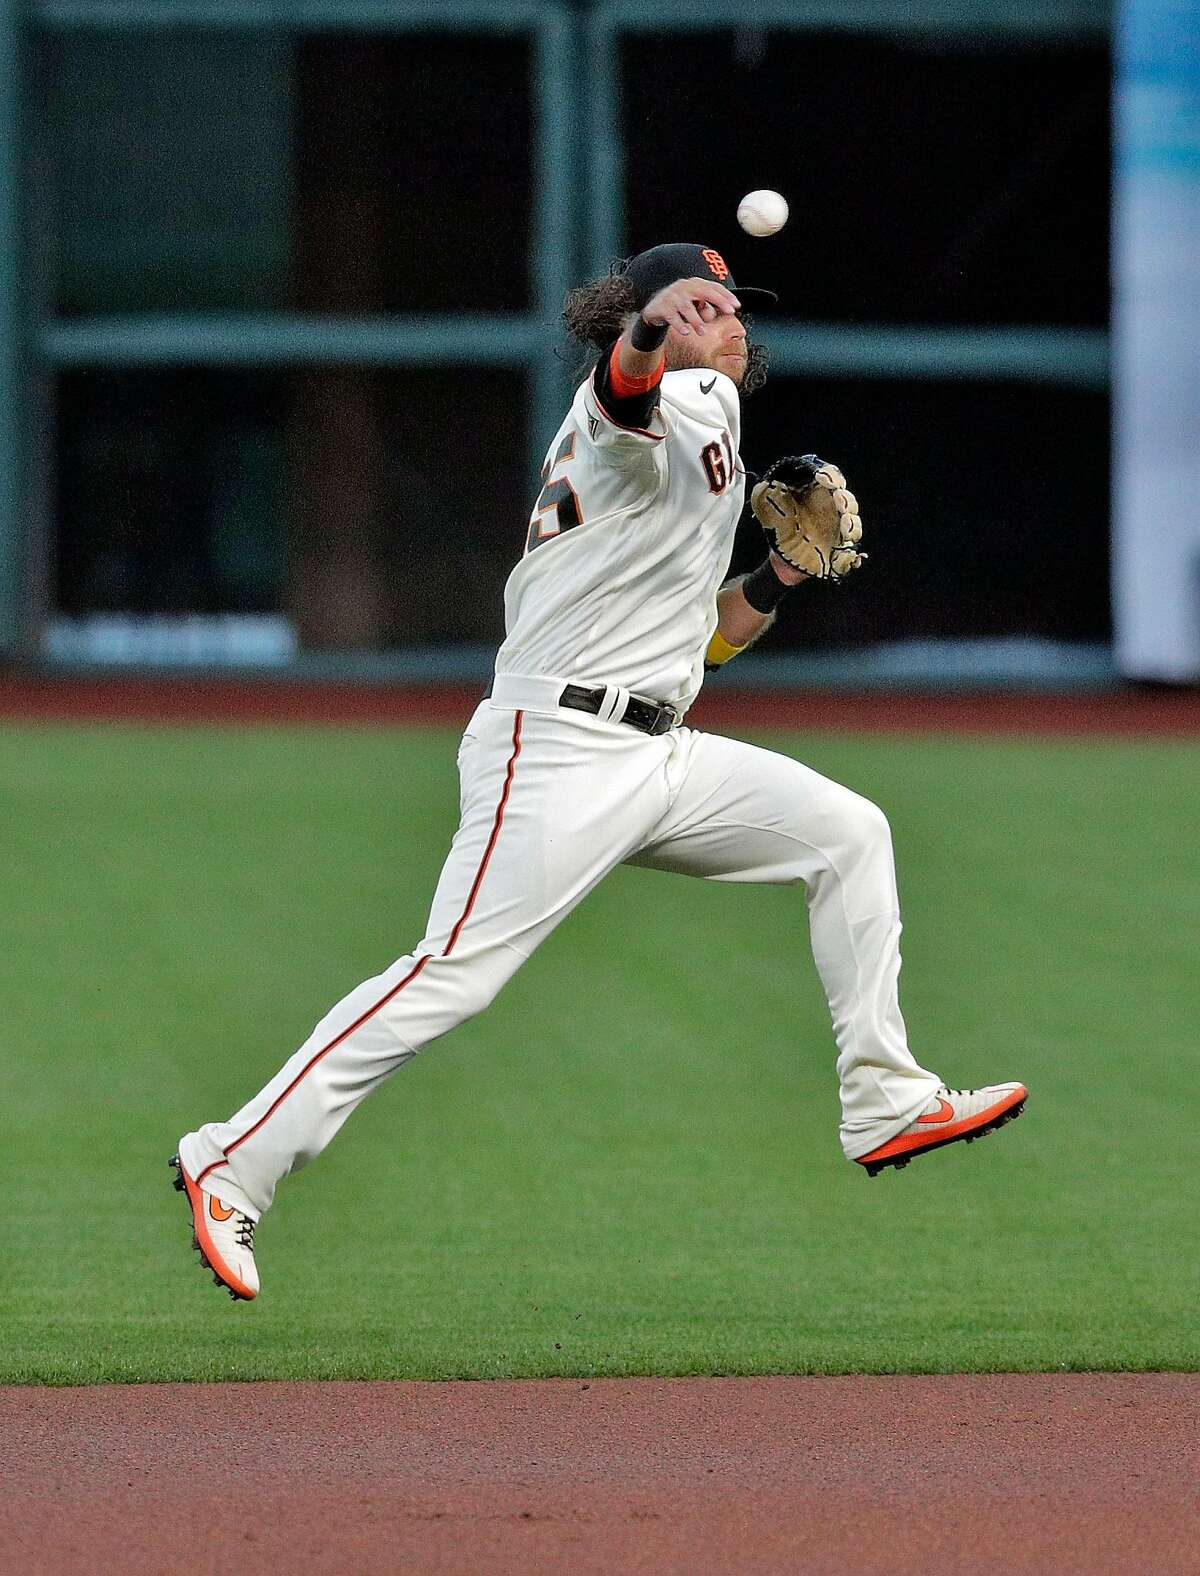 Brandon Crawford (35) pivots and throws to first to get Elias Diaz (35) at first base in the first inning as the San Francisco Giants played the Colorado Rockies at Oracle Park in San Francisco, Calif., on Monday, September 21, 2020.